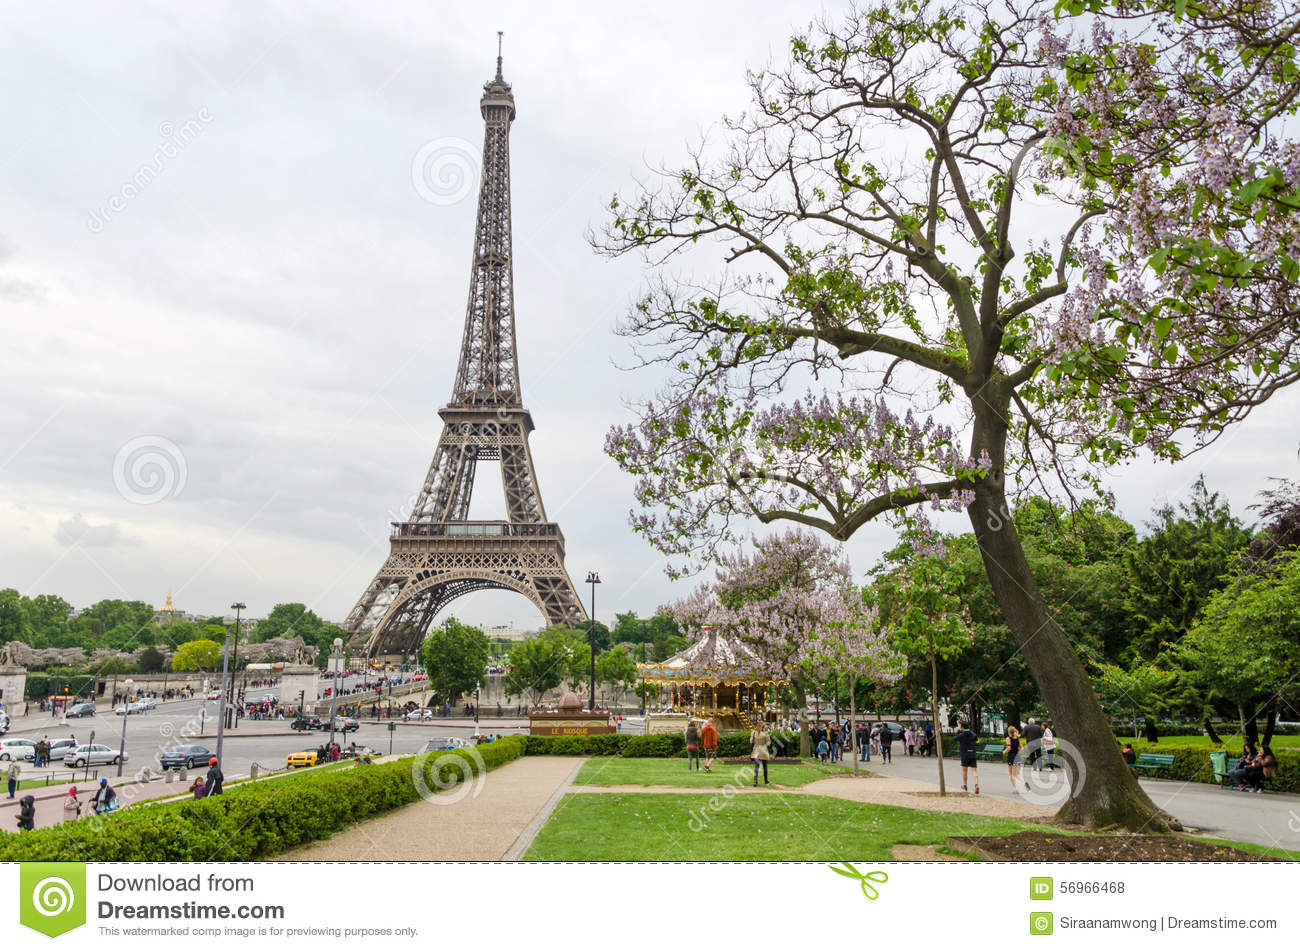 Paris france may 15 2015 tourist visit eiffel tower for Places to stay near eiffel tower